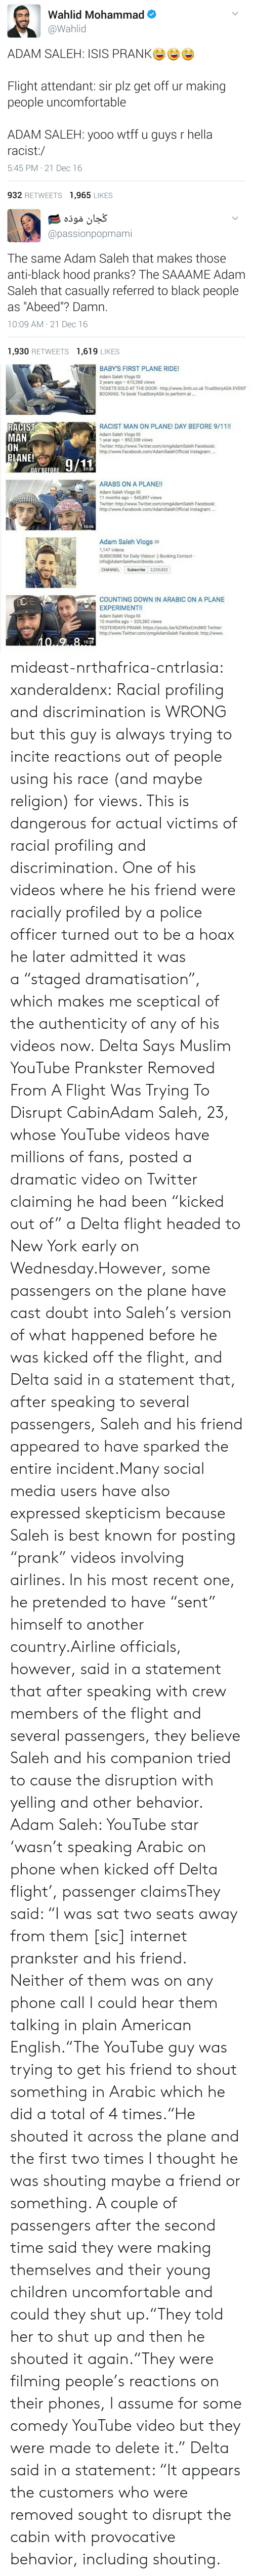 """9/11, Children, and Clothes: Wahlid Mohammad  @Wahlid  ADAM SALEH: ISIS PRANKe  Flight attendant: sir plz get off ur making  people uncomfortable  ADAM SALEH: yooo wtff u guys r hella  racist:/  5:45 PM 21 Dec 16  932 RETWEETS 1,965 LIKES   @passionpopmami  The same Adam Saleh that makes those  anti-black hood pranks? The SAAAME Adam  Saleh that casually referred to black people  as """"Abeed""""? Damn.  10:09 AM- 21 Dec 16  1,930 RETWEETS 1,619 LIKES   BABYS FIRST PLANE RIDE!  Adam Saleh Vlogs  2 years ago 610,268 views  TICKETS SOLD AT THE DOOR http://www.3mh.co.uk TrueStoryASA EVENT  BOOKING: To book TrueStoryASA to perform at...  9:56  RACIST  MAN  RACIST MAN ON PLANE! DAY BEFORE 9/11!  Adam Saleh Vlogs  1 year ago 852,338 views  Twitter: http://www.Twitter.com/omgAdamSaleh Facebook:  http://www.Facebook.com/AdamSalehOfficial Instagram:.  PLANE0/11  13:28  ARABS ON A PLANE!!  Adam Saleh Vlogs  Twitter: http://www.Twitter.com/omgAdamSaleh Facebook  11 months ago 545,897 views  http://www.Facebook.com/AdamSalehOfficial Instagram  10:06  Adam Saleh Vlogs a  1.147 videos  SUBSCRIBE for Daily Videos! ) Booking Contact  info@AdamSalehworldwide.com.  CHANNEL Subscribe 2,250,822  COUNTING DOWN IN ARABIC ON A PLANE  EXPERIMENT!!  Adam Saleh Vlogs  10 months ago 320,382 views  YESTERDAYS PRANK: https://youtu.be/6ZWfxxCmdW0 Twitter  http://www.Twitter.com/omgAdamSaleh Facebook: http://www  15:23 mideast-nrthafrica-cntrlasia:  xanderaldenx: Racial profiling and discrimination is WRONG but this guy is always trying to incite reactions out of people using his race (and maybe religion) for views. This is dangerous for actual victims of racial profiling and discrimination. One of his videos where he  his friend were racially profiled by a police officer turned out to be a hoax  he later admitted it was a""""staged dramatisation"""", which makes me sceptical of the authenticity of any of his videos now.  Delta Says Muslim YouTube Prankster Removed From A Flight Was Trying To Disrupt CabinAd"""